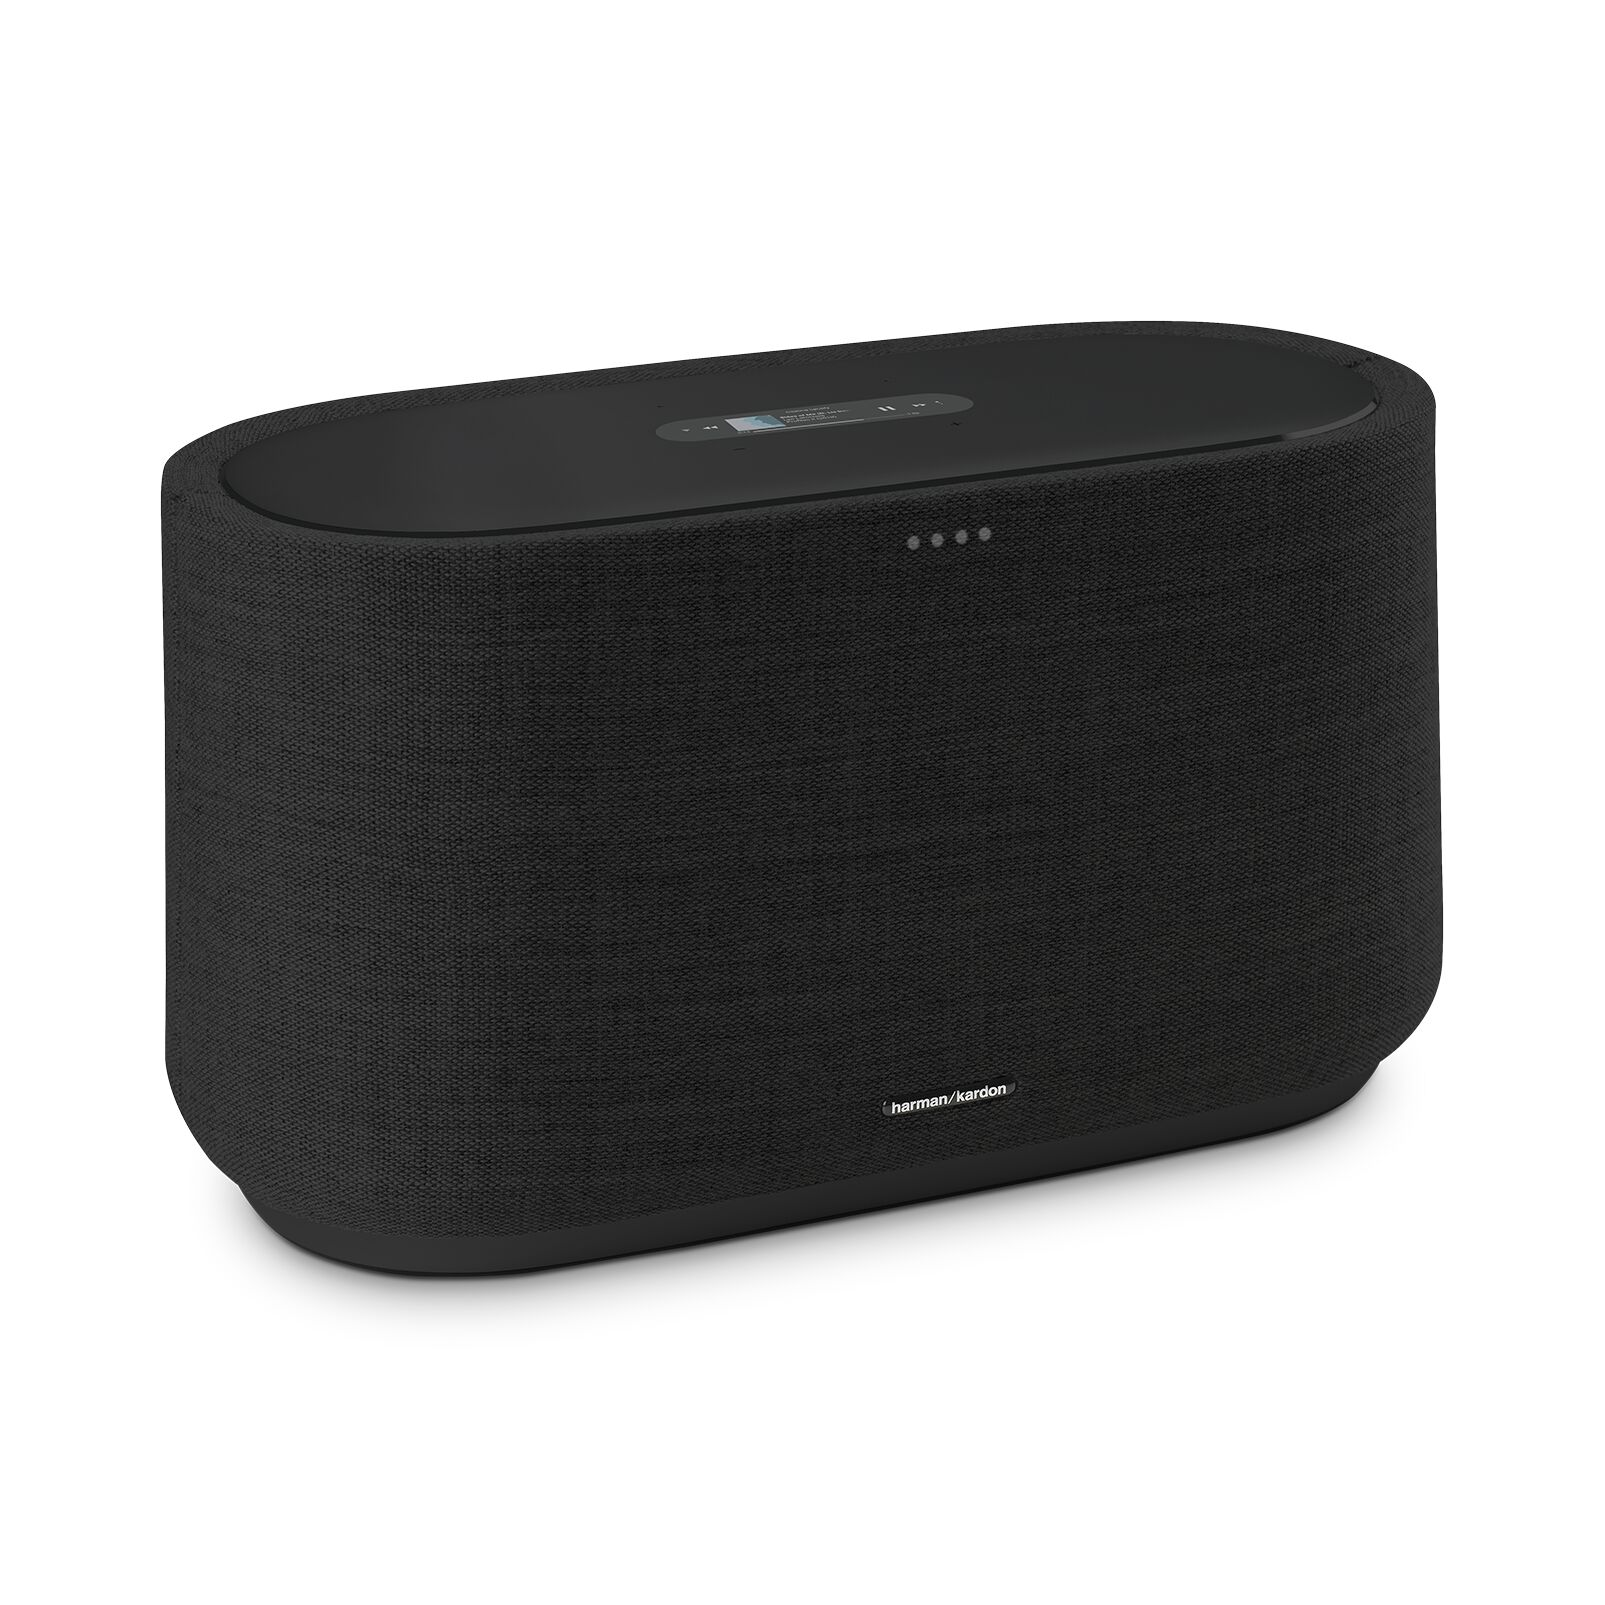 Harman Kardon Citation 500 Black Smart Speaker